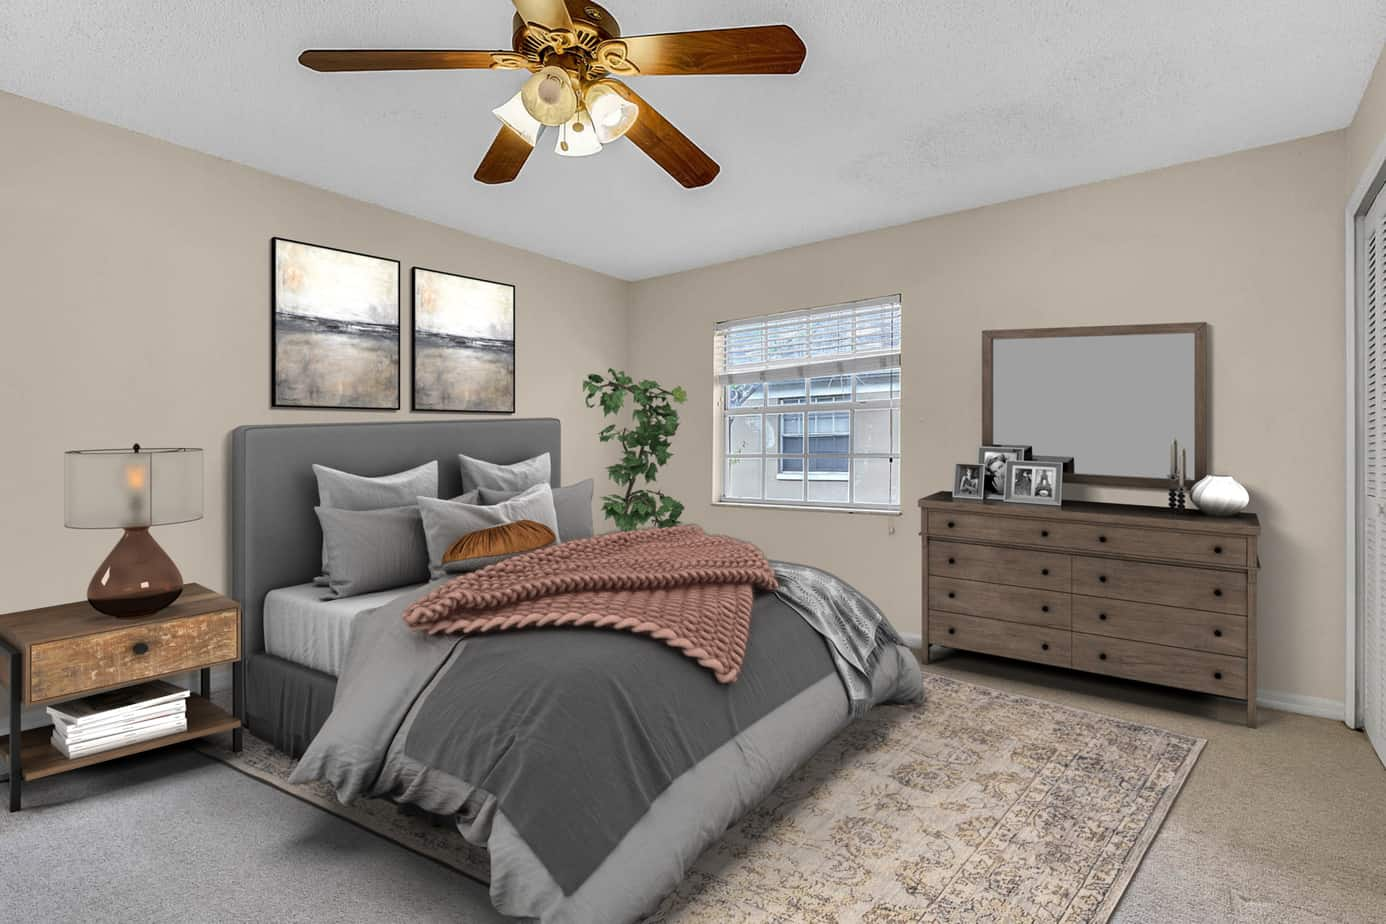 Image of bedroom of 408 S Arrawana Ave #C3 Tampa FL 33609 with gray bed, oriental rug, and dresser